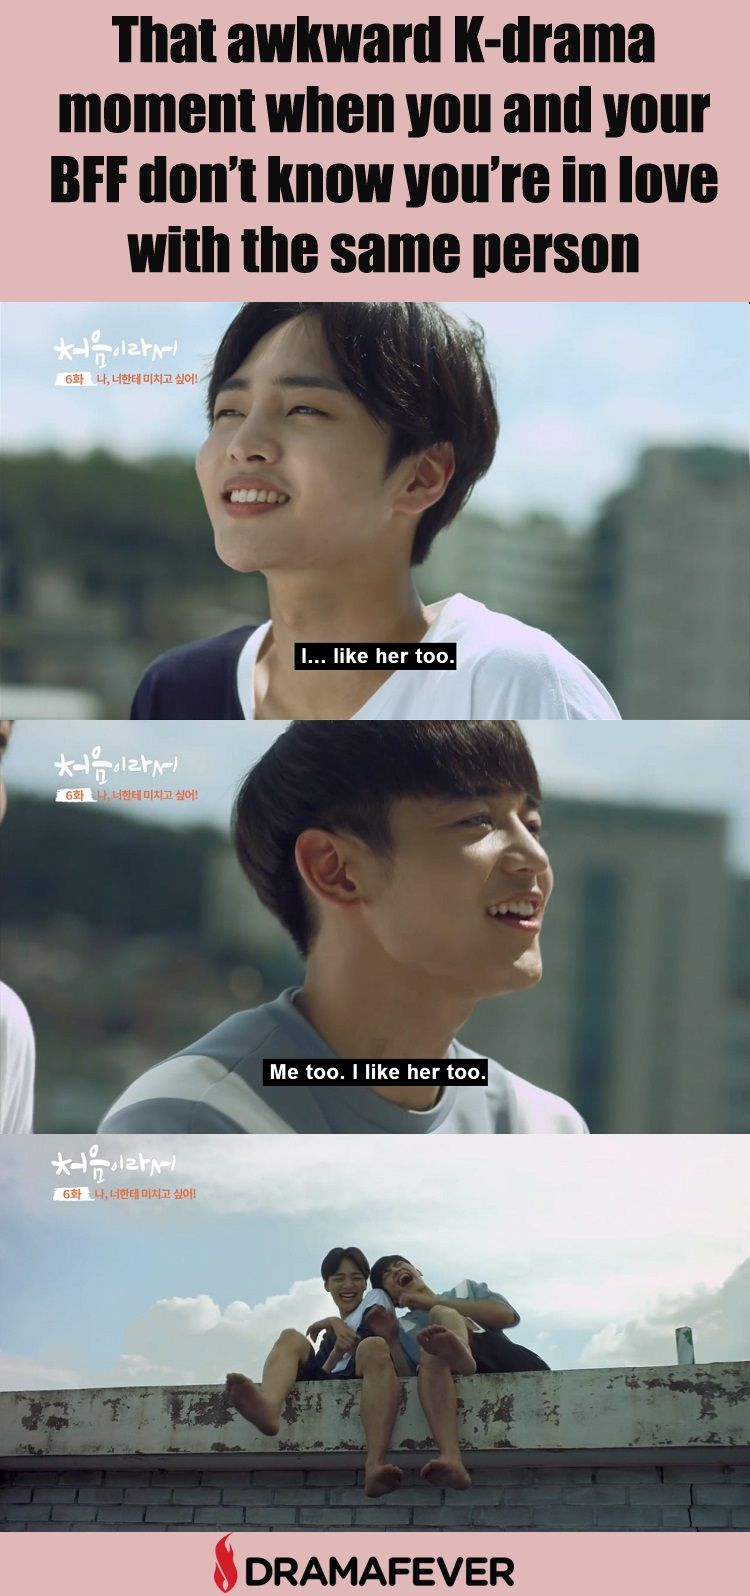 Watch Choi Minho and Kim Min Jae in the coming-of-age series Because